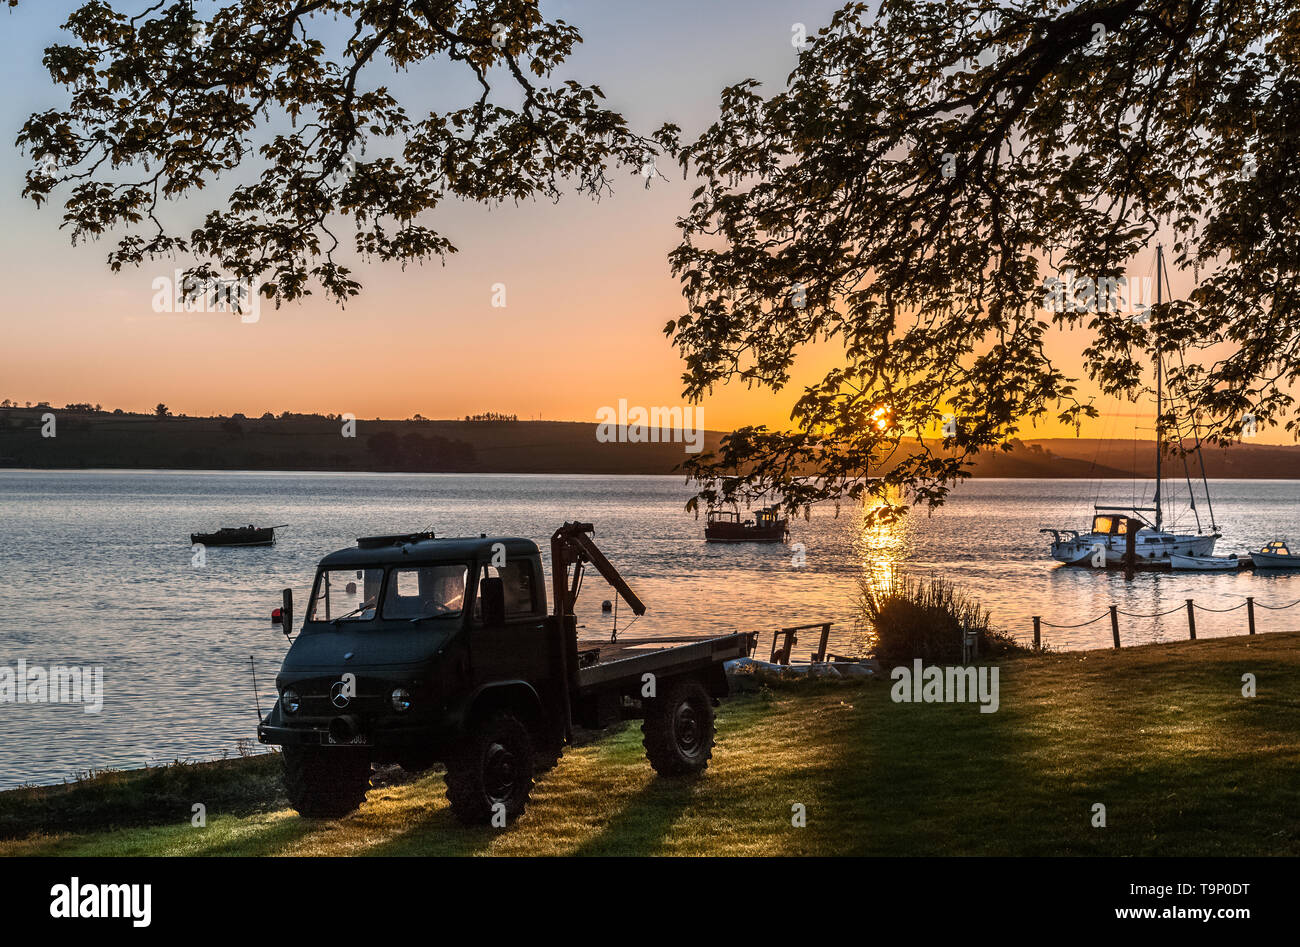 Courtmacsherry, Cork, Ireland. 20th May, 2019. A  classic 1960's Mercedes Unimog 404 flatbed truck parked near the waters edge in Courtmacsherry, Co. Cork, Ireland. Credit; David Creedon / Alamy Live News - Stock Image